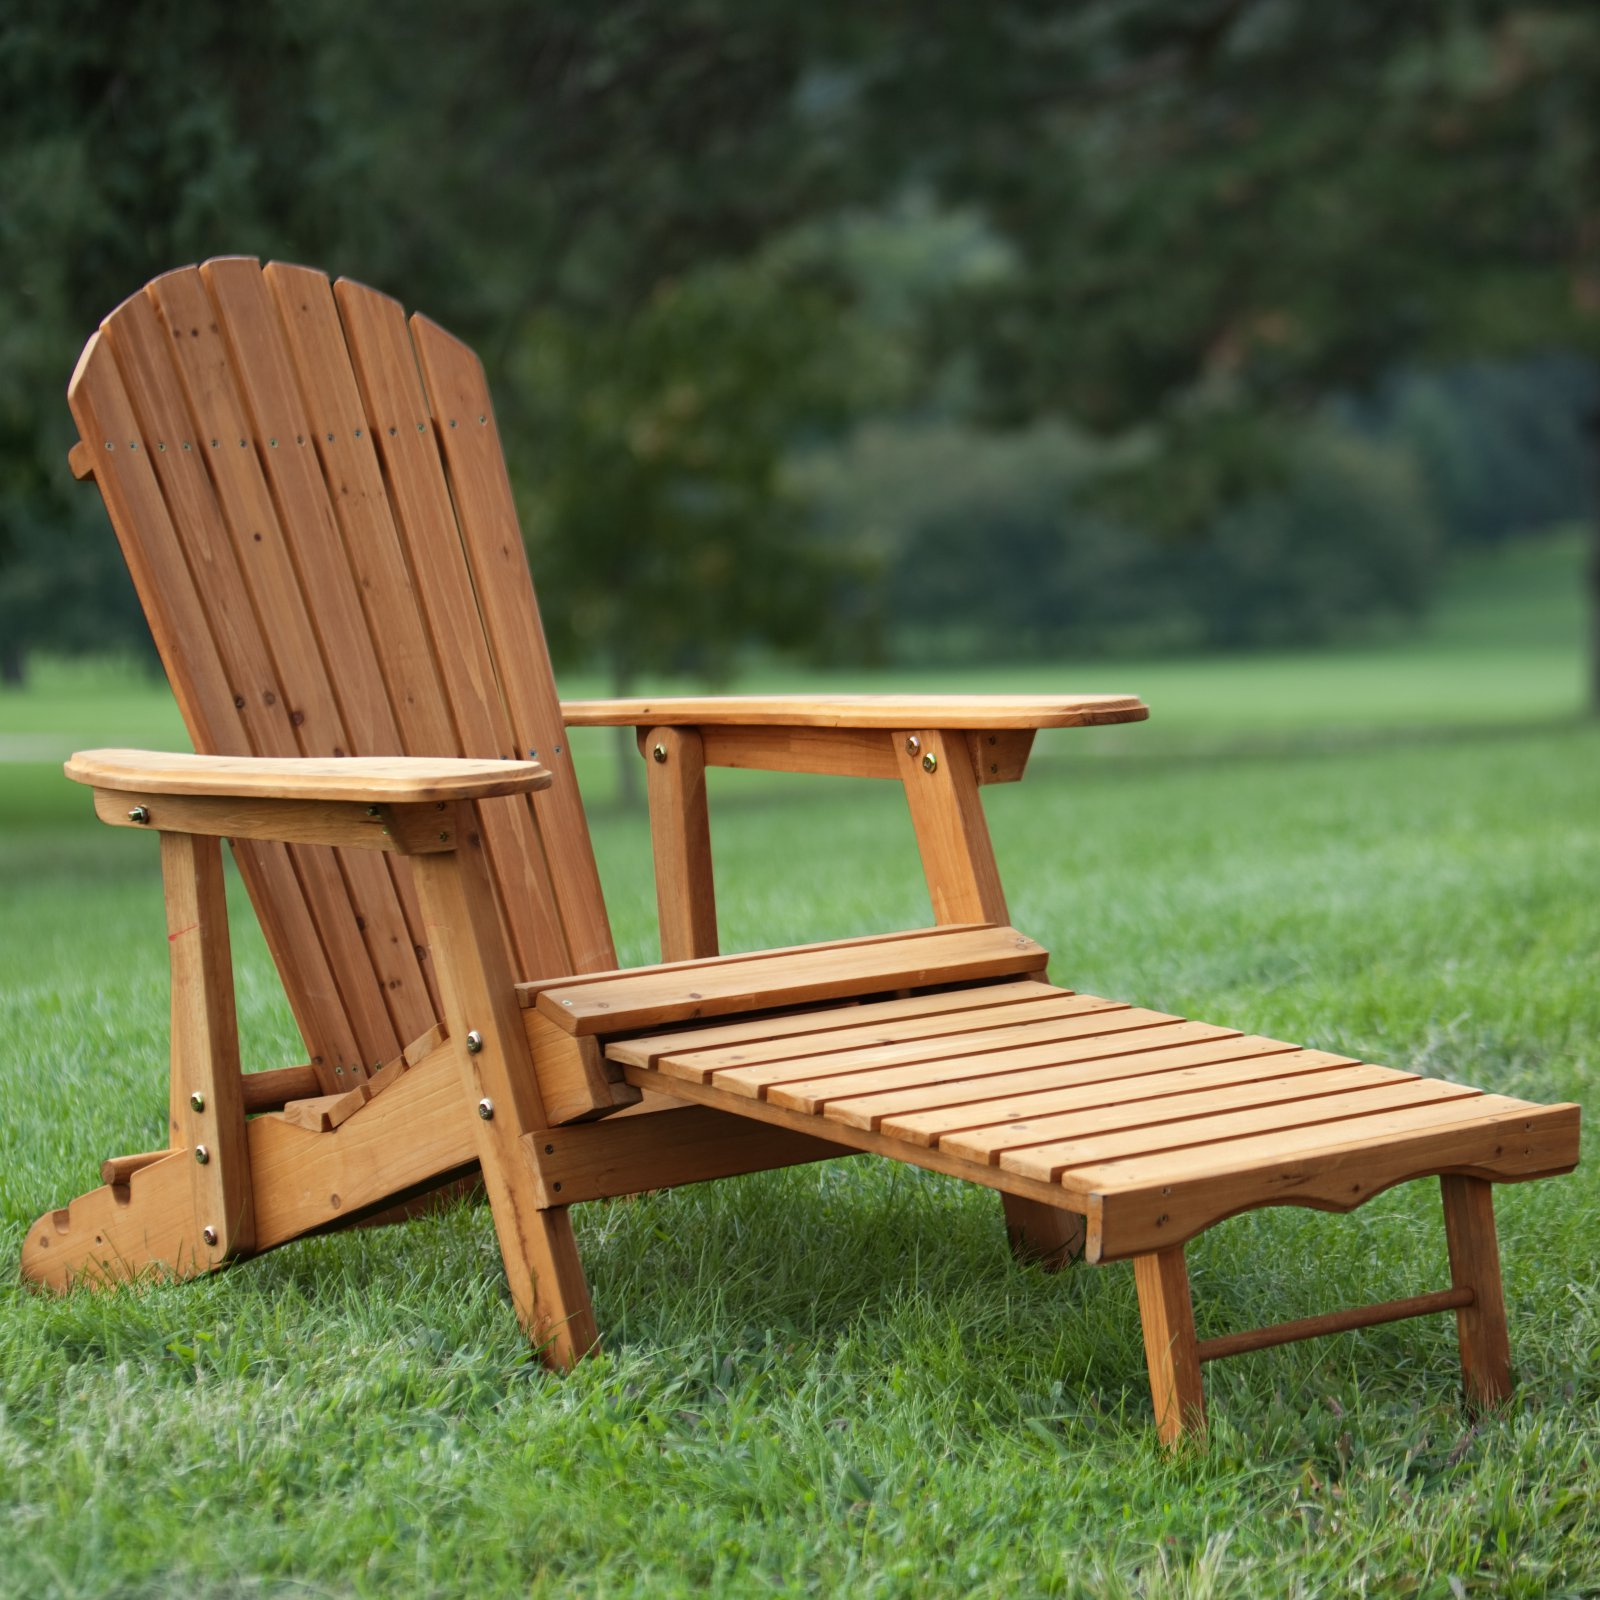 Coral Coast Big Daddy Reclining Tall Wood Adirondack Chair with Pull-out Ottoman Natural by Weicheng (HK) Industrial Trade Co Ltd